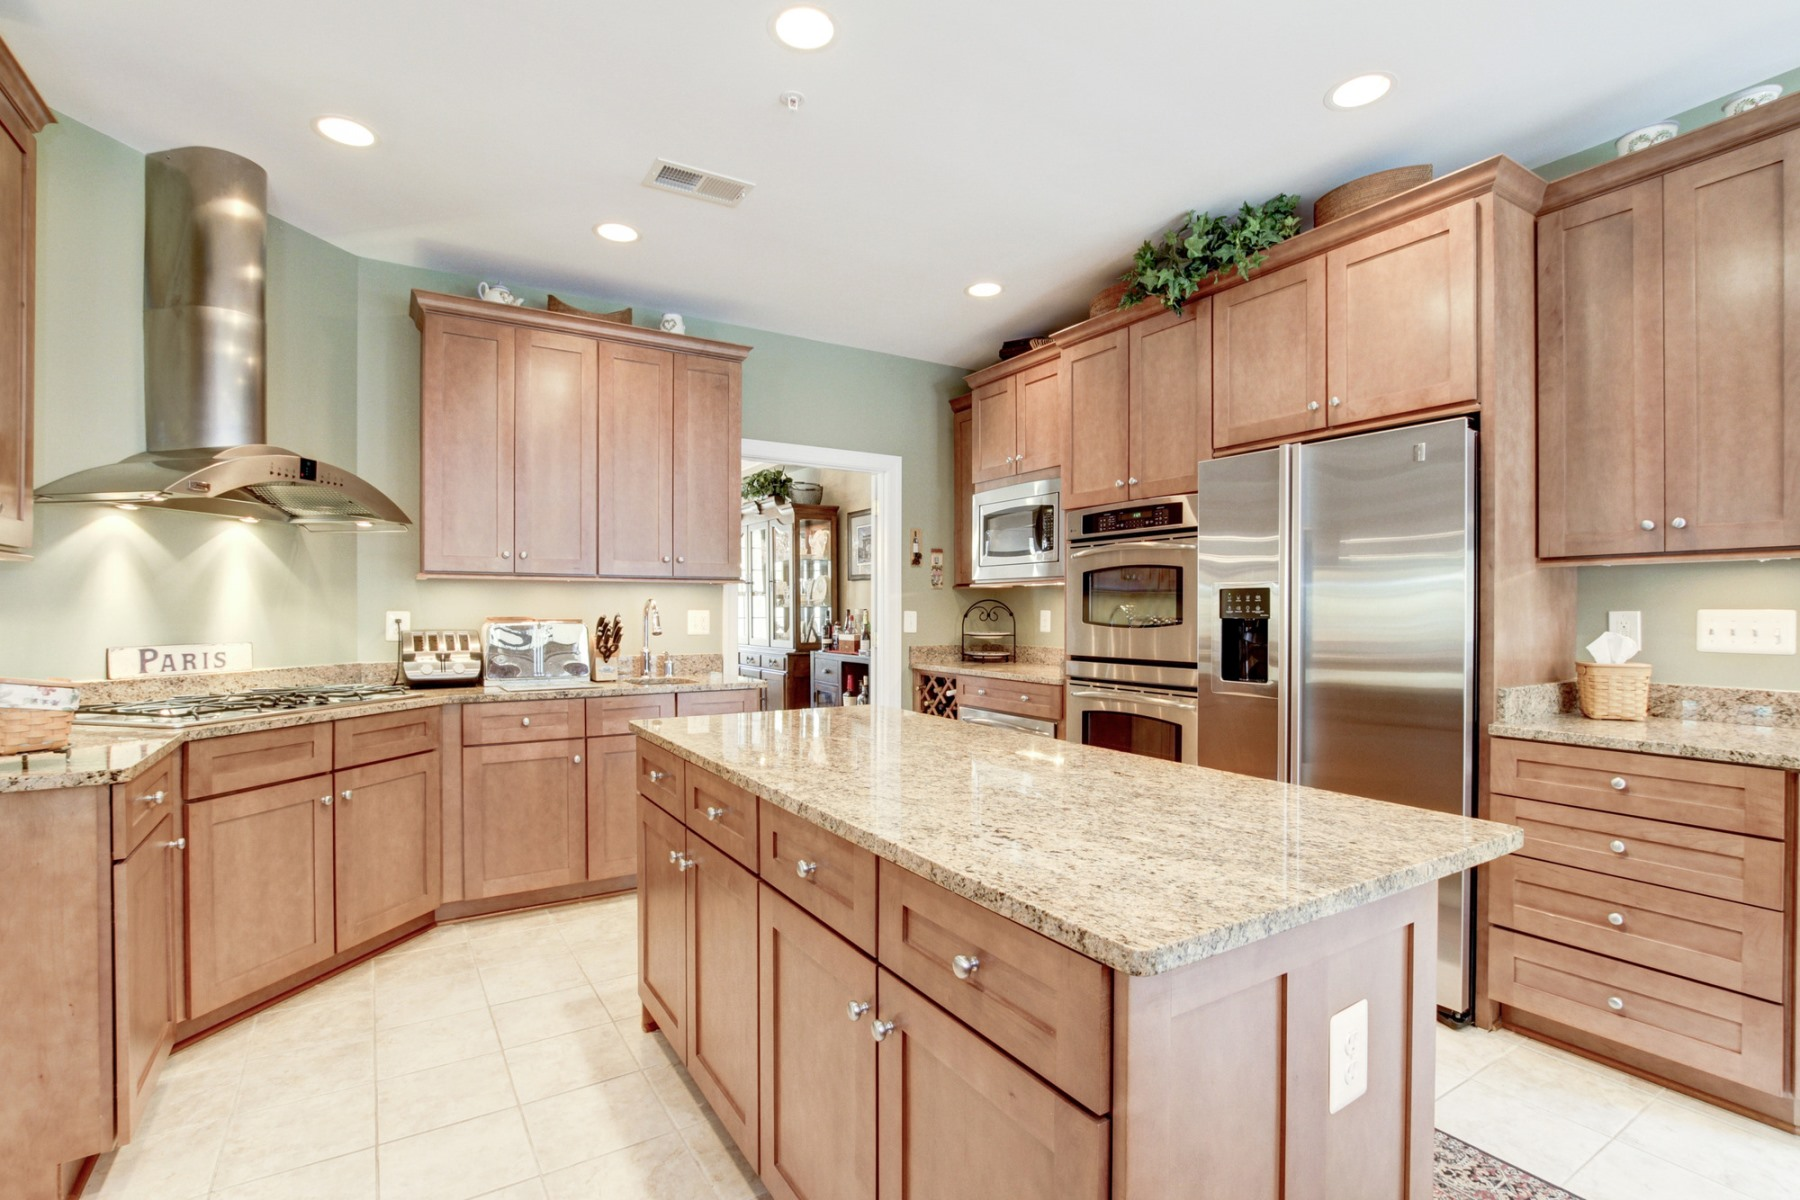 Additional photo for property listing at 9013 Magruder Knolls Court, Gaithersburg 9013 Magruder Knolls Ct Gaithersburg, メリーランド 20882 アメリカ合衆国